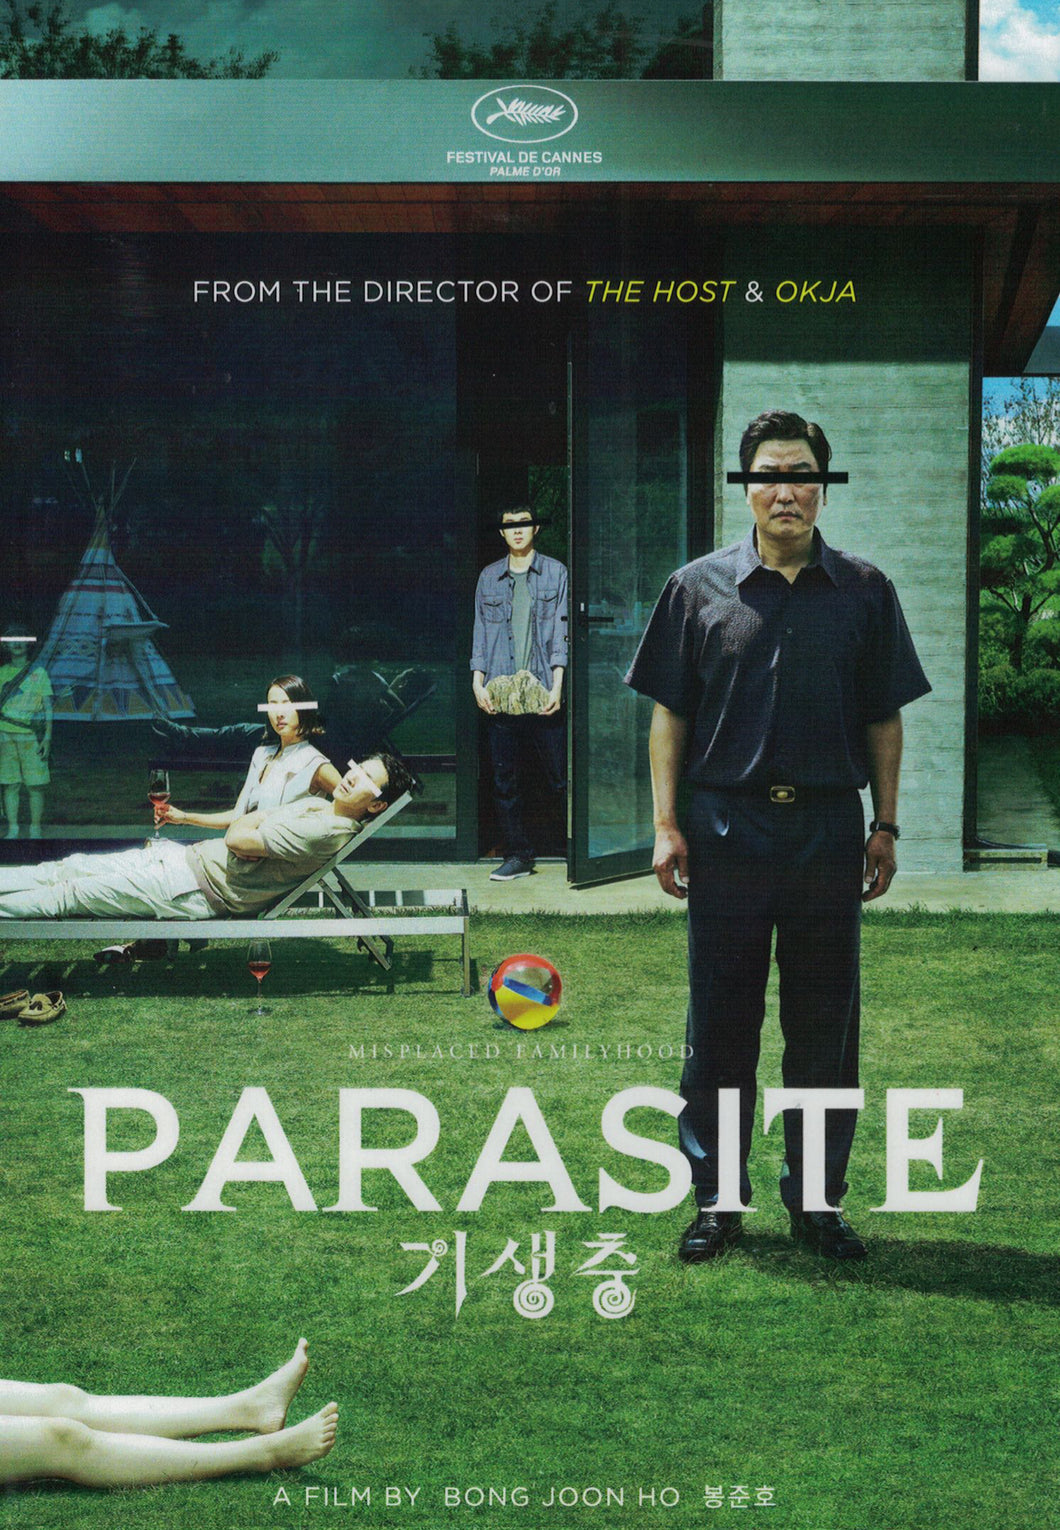 Parasite (Golden Globe Award Winner)